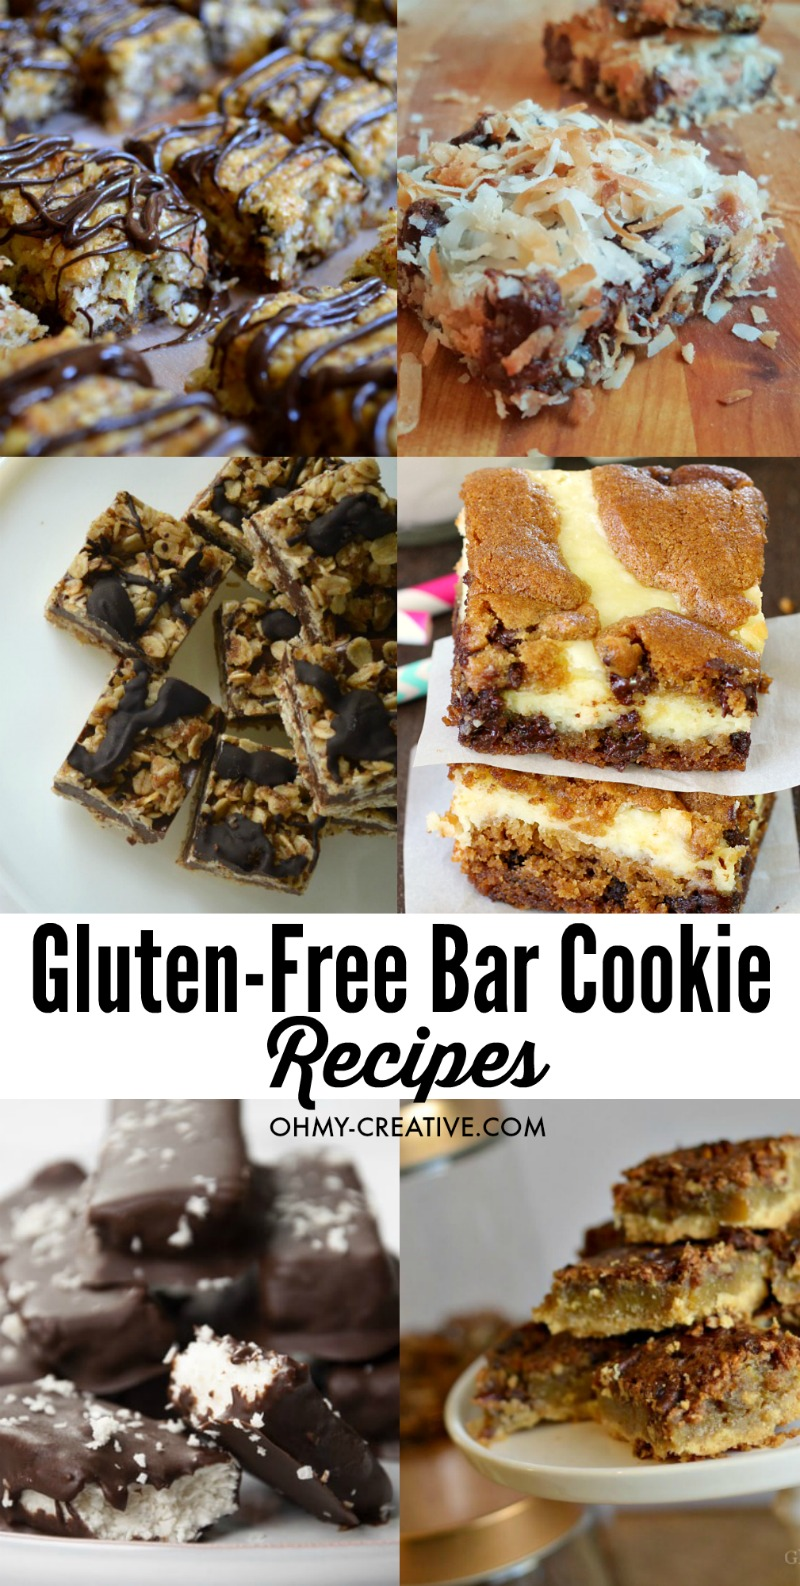 Gluten-Free Cookie Recipes | OHMY-CREATIVE.COM | Gluten Free Recipes | Easy Recipes | Gluten Free Desserts | Easy Desserts | Recipes | Gluten-Free Cookie Recipes